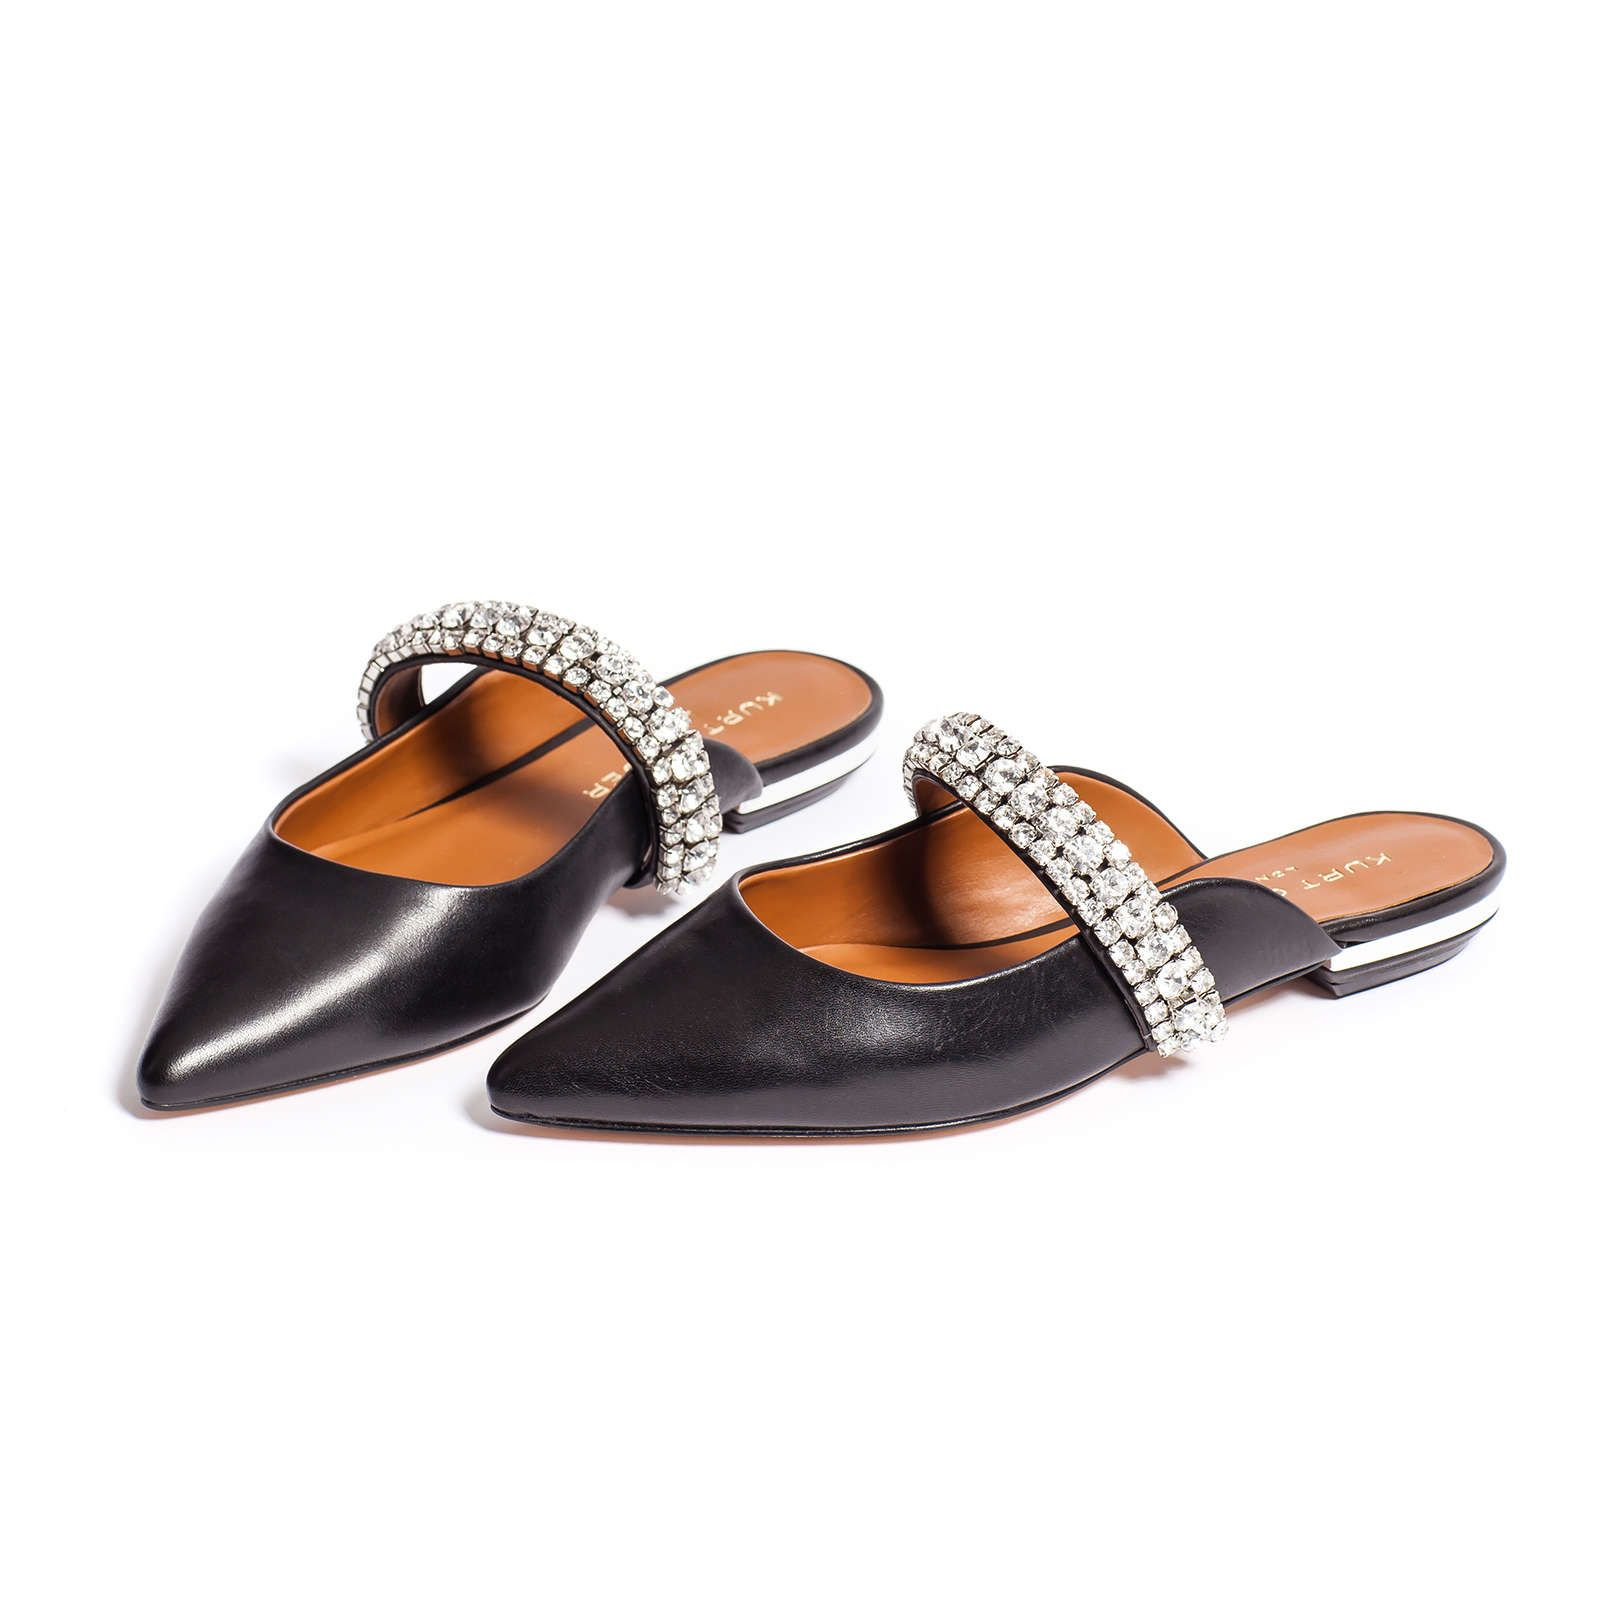 Occasion shoes, Shoes, Leather mules